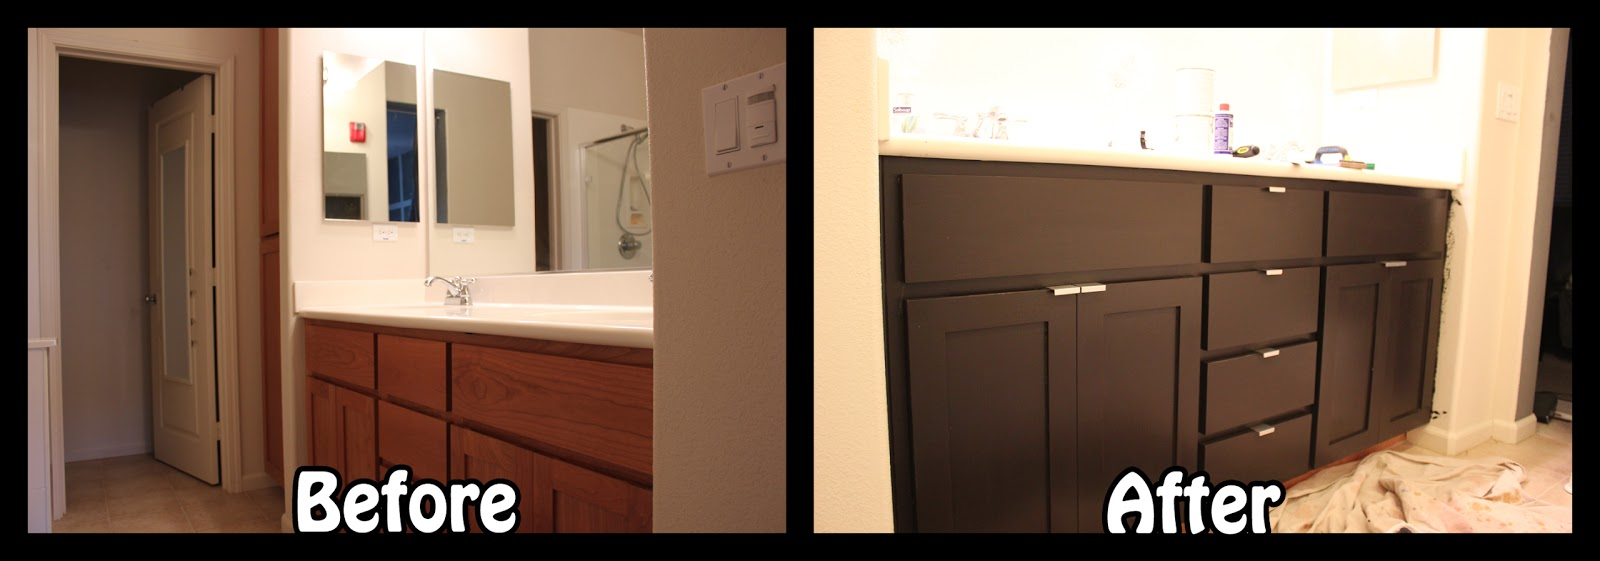 Inside the Frame: The Master Bathroom Project ...